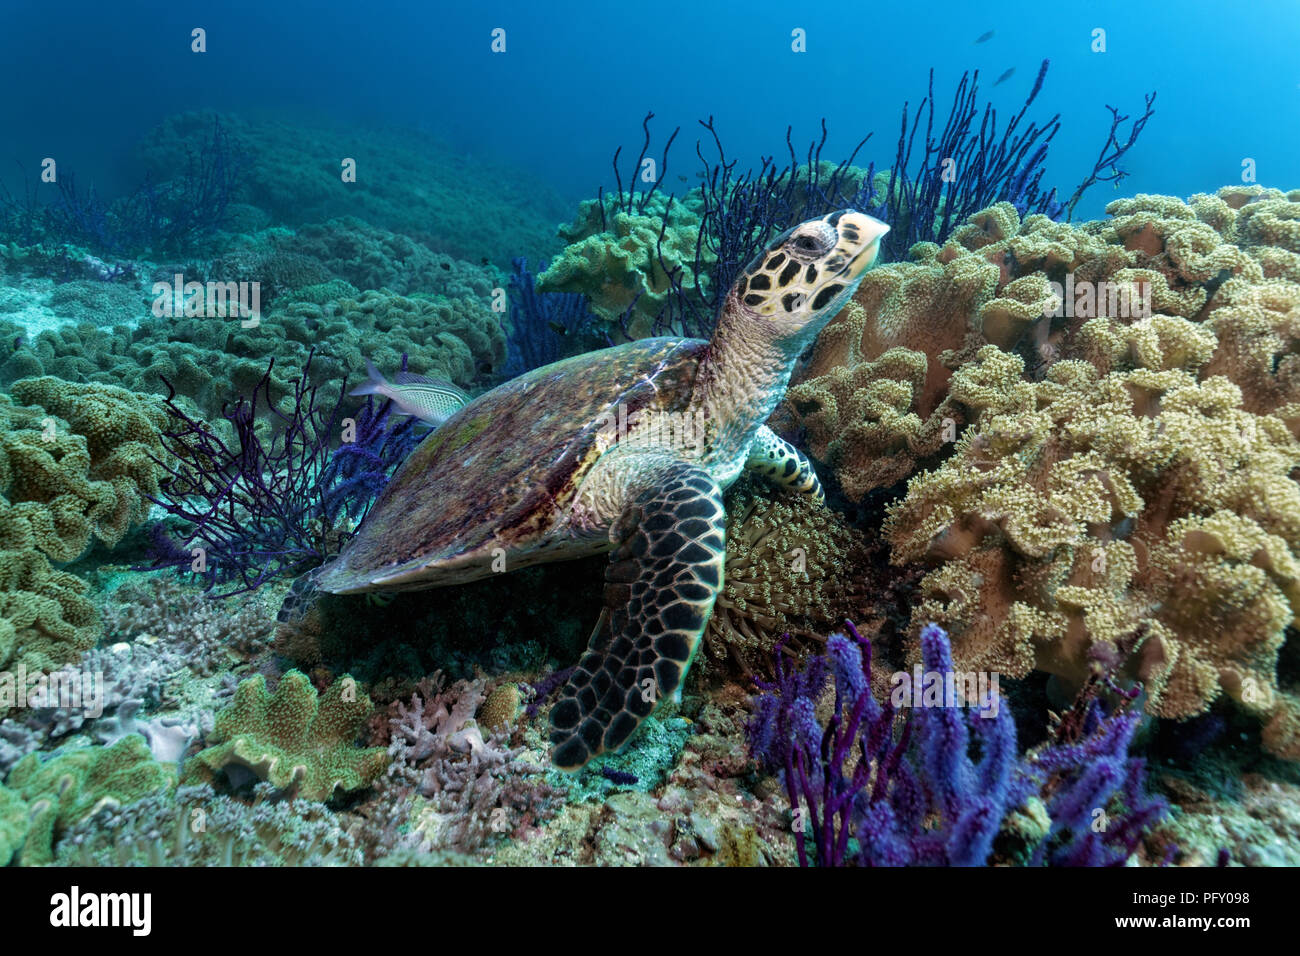 Hawksbill sea turtle (Eretmochelys imbricata), in the coral reef between Red sea whip (Ellisella sp.) and leathery corals - Stock Image